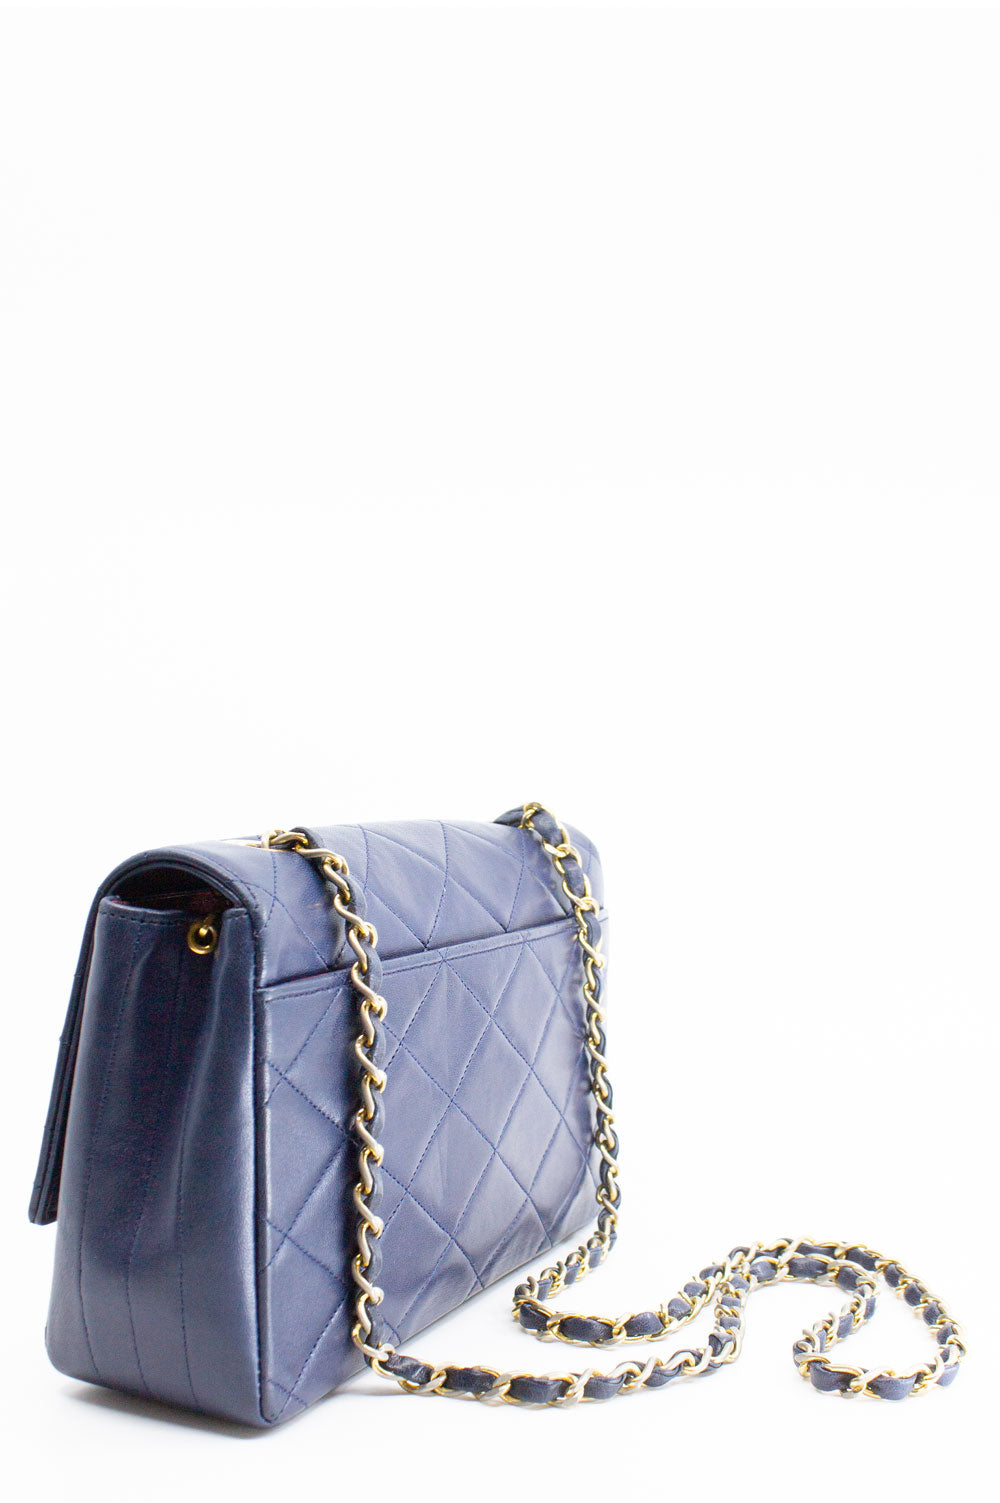 CHANEL Vintage Flap Bag Dark Blue